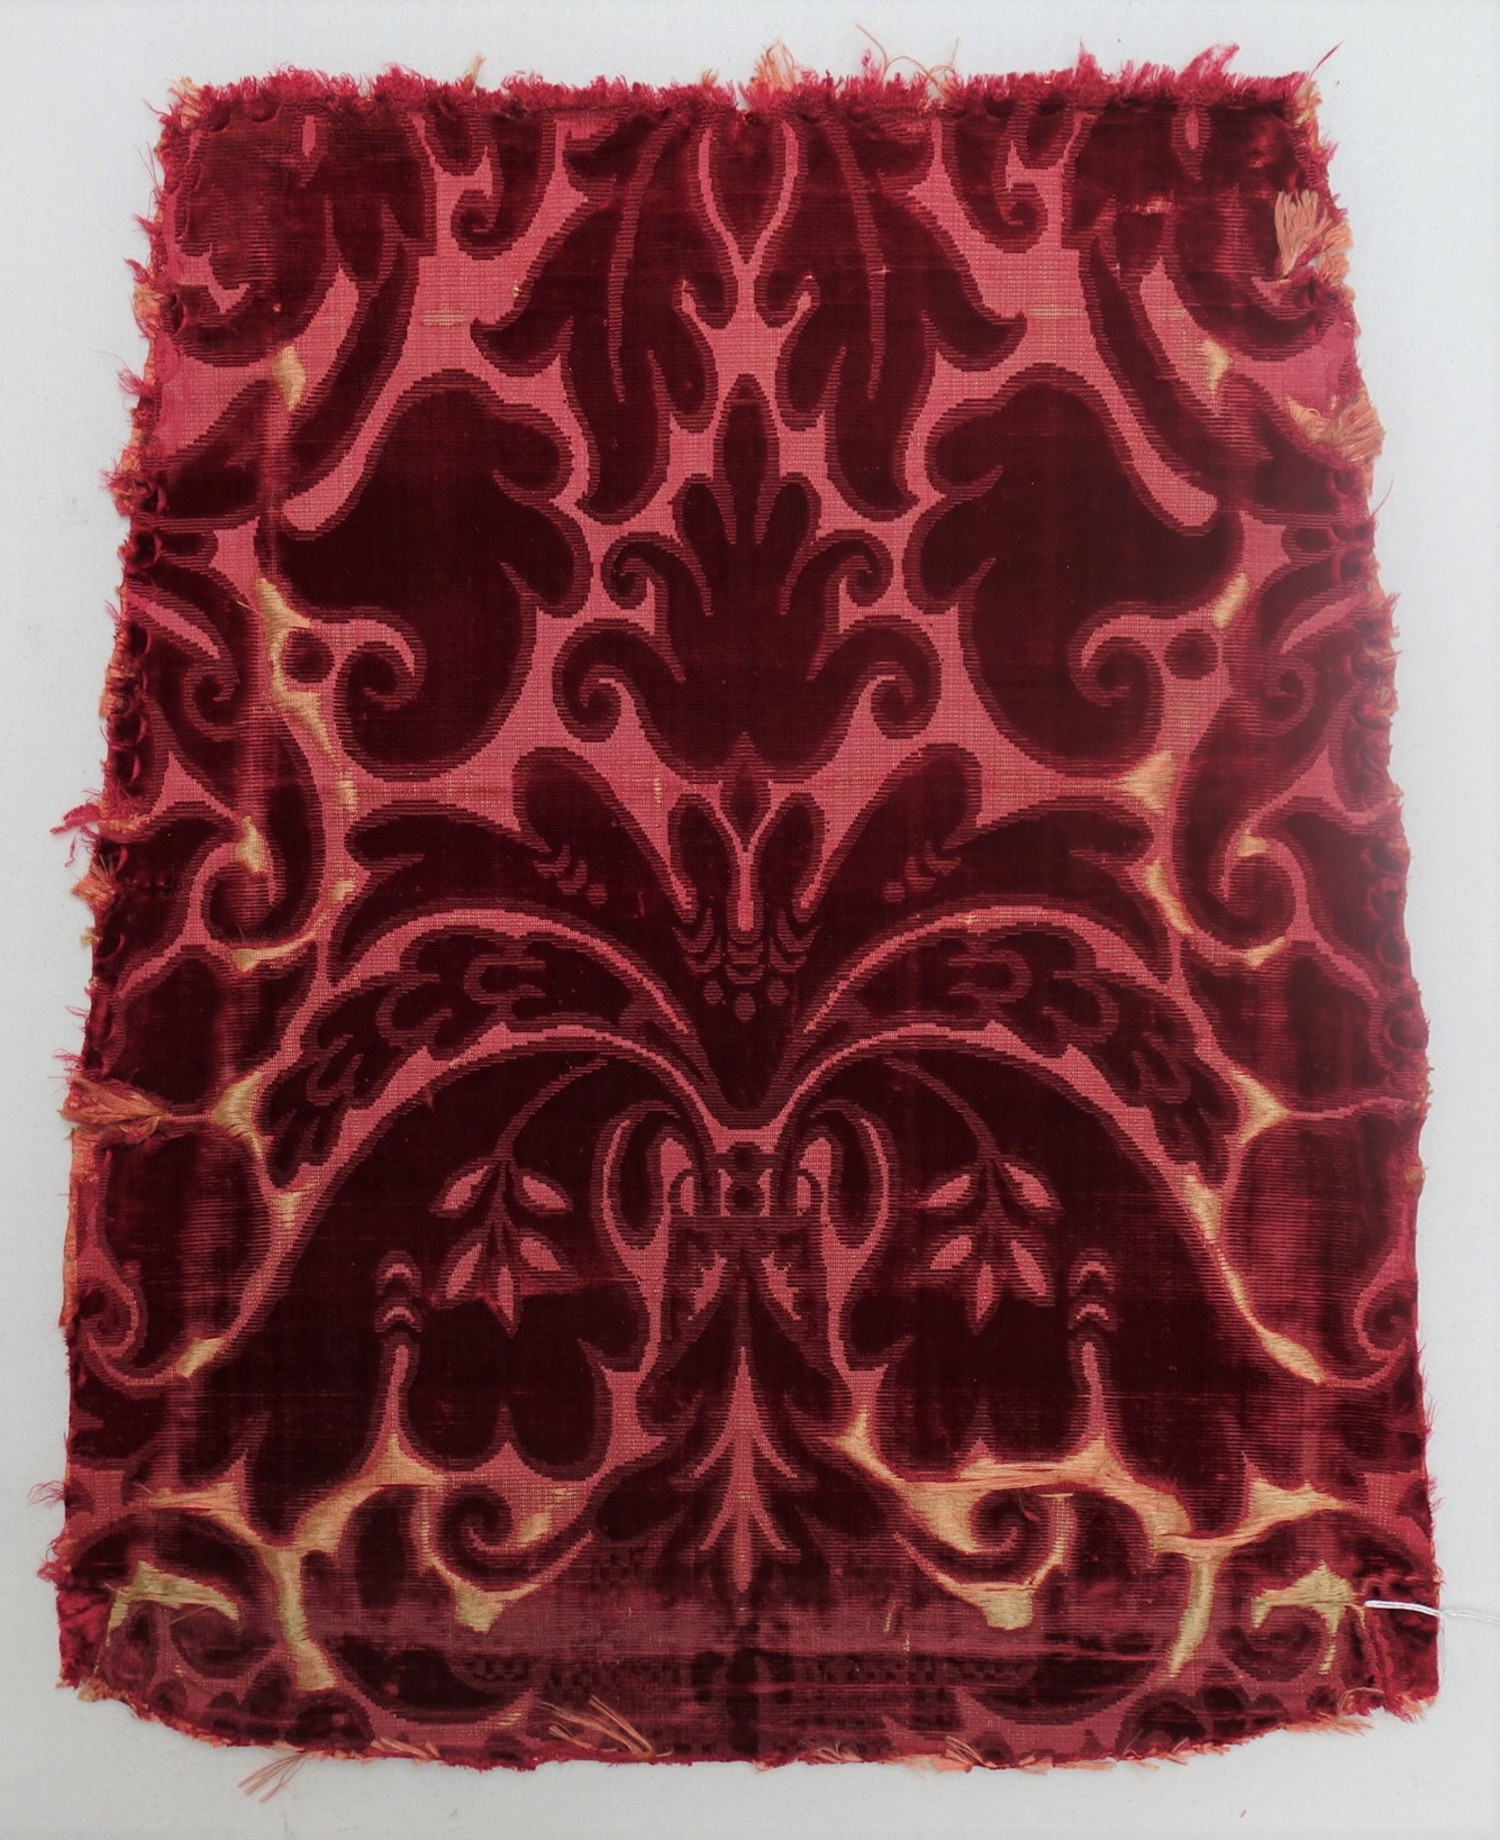 Chair back made of silk, voided velvet with cut and uncut pile, early 19th century (TRC 2011.0368).